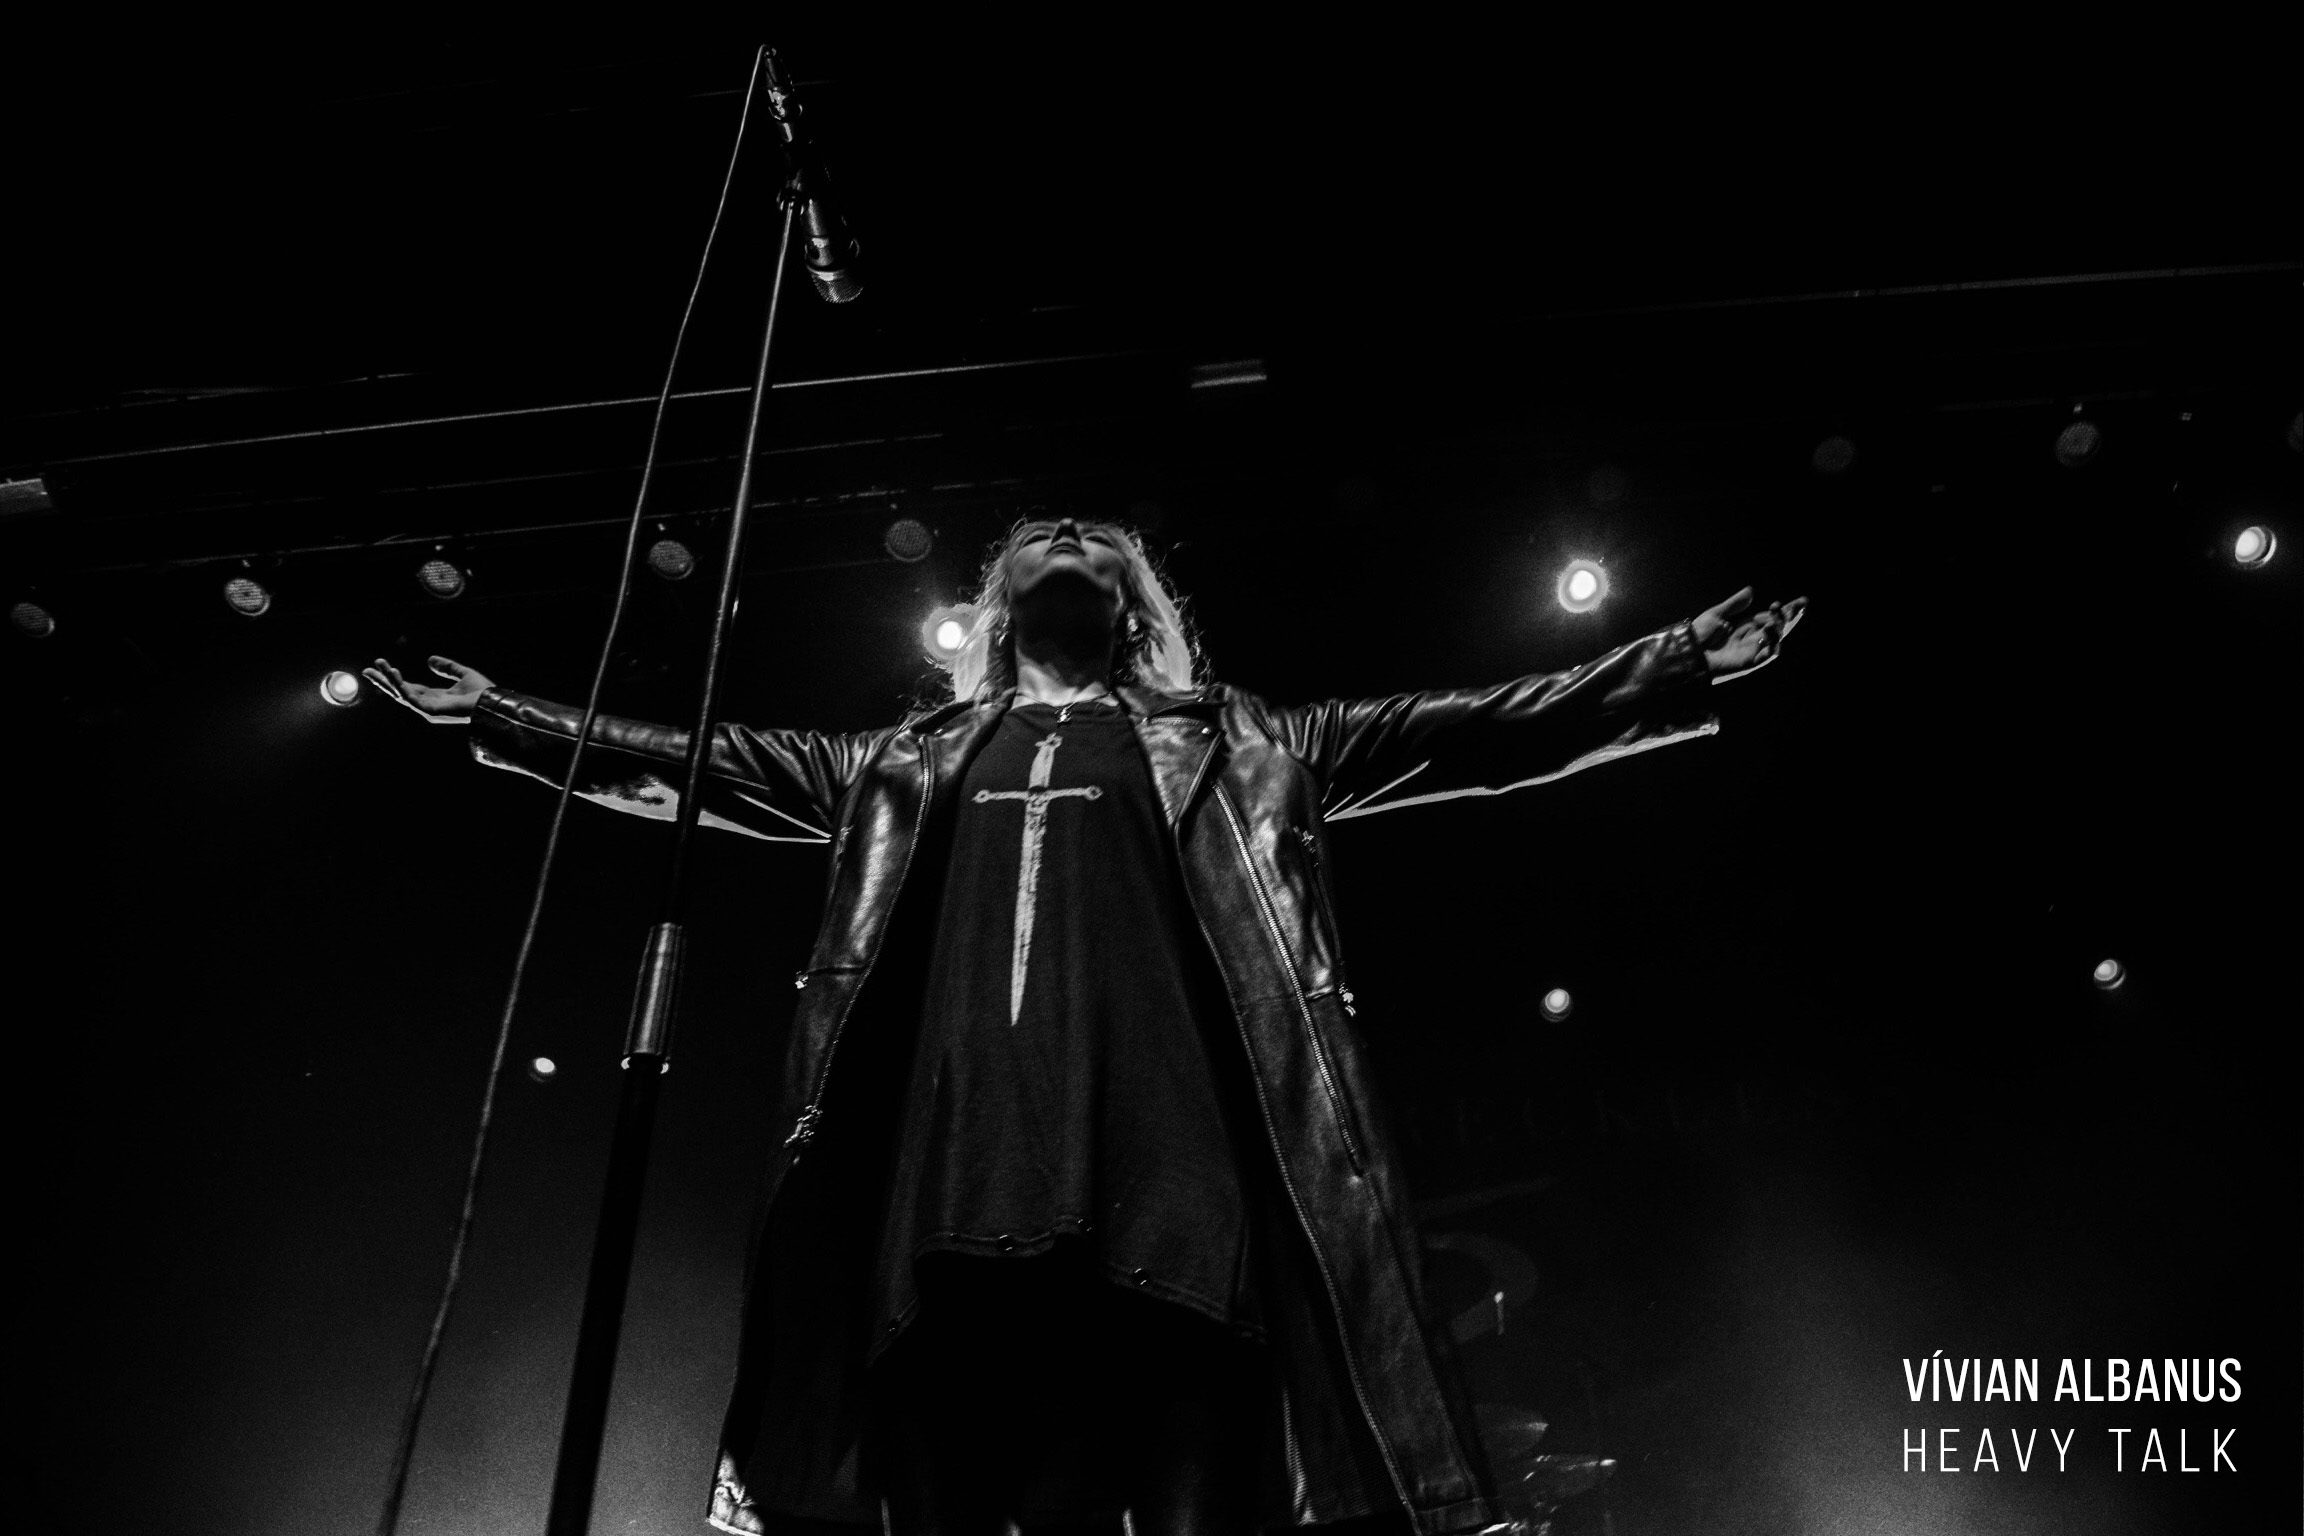 The Pretty Reckless - Rio de Janeiro - HEAVY TALK - Official Website - All Rights Reserved 2017